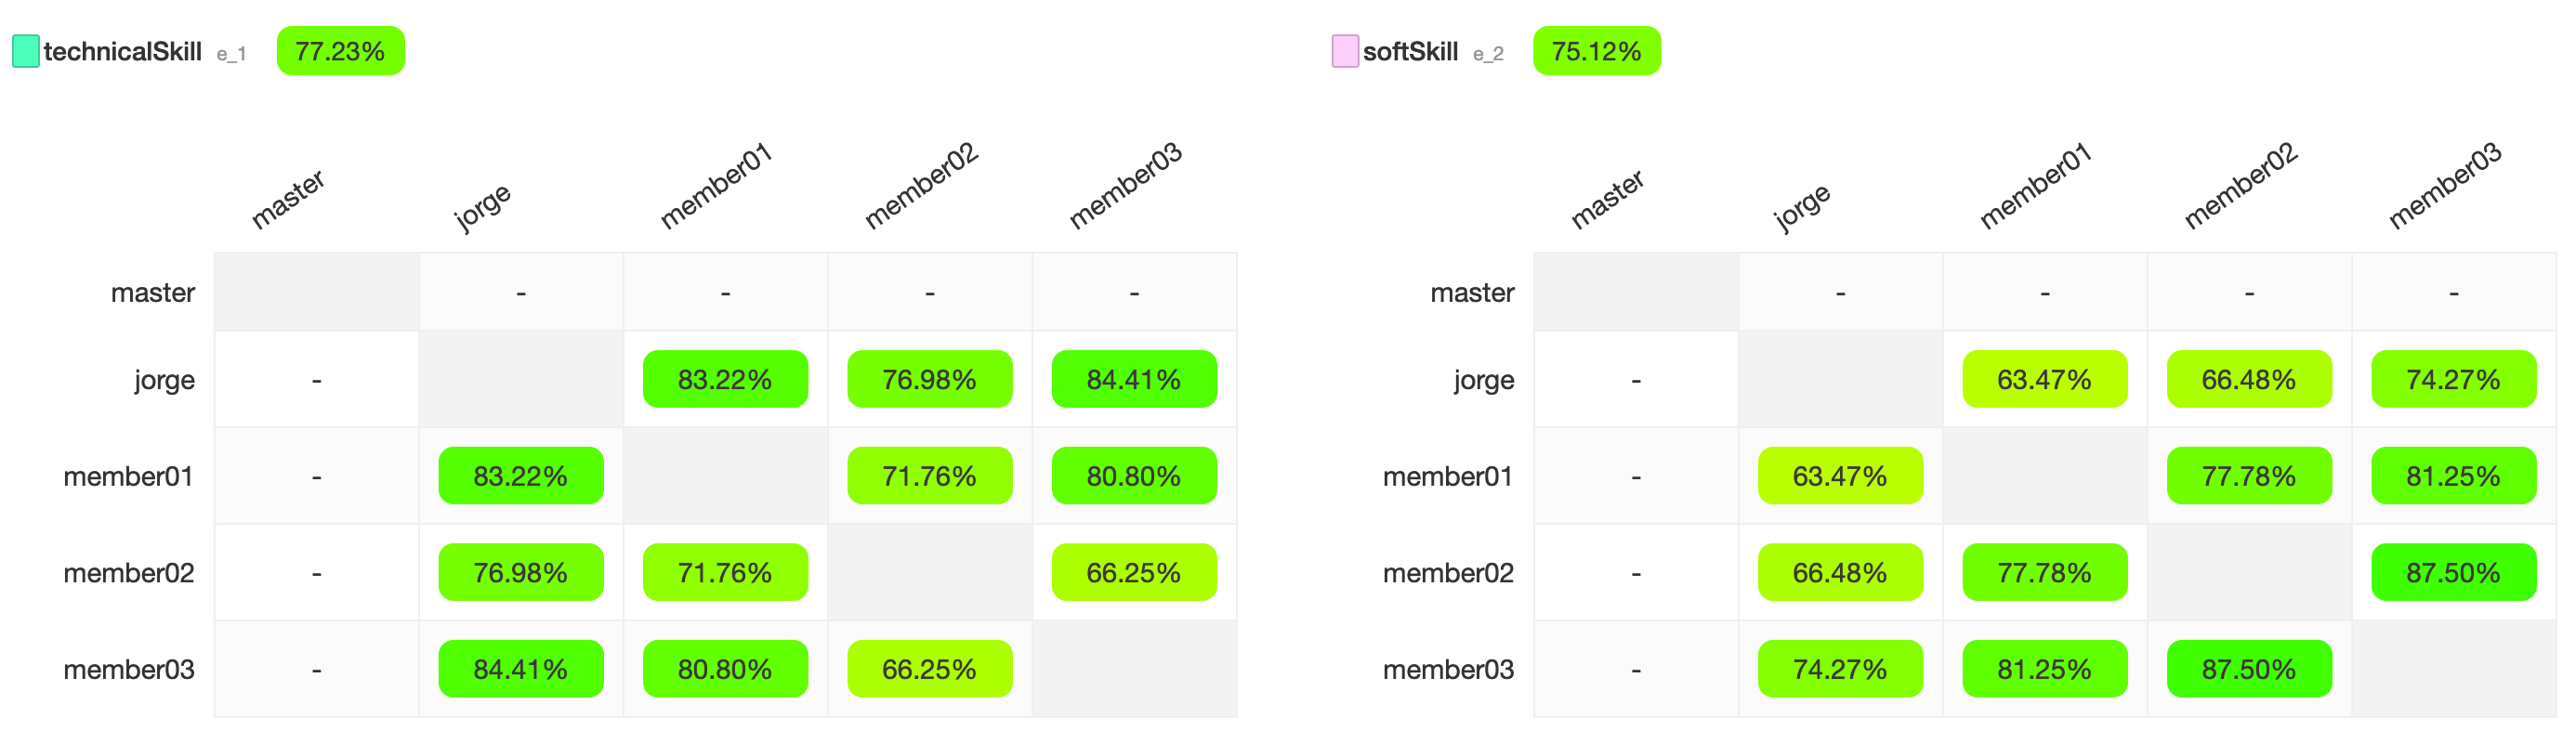 IAA metrics for two annotation tasks: entity type technicalSkill and entity type softSkill.